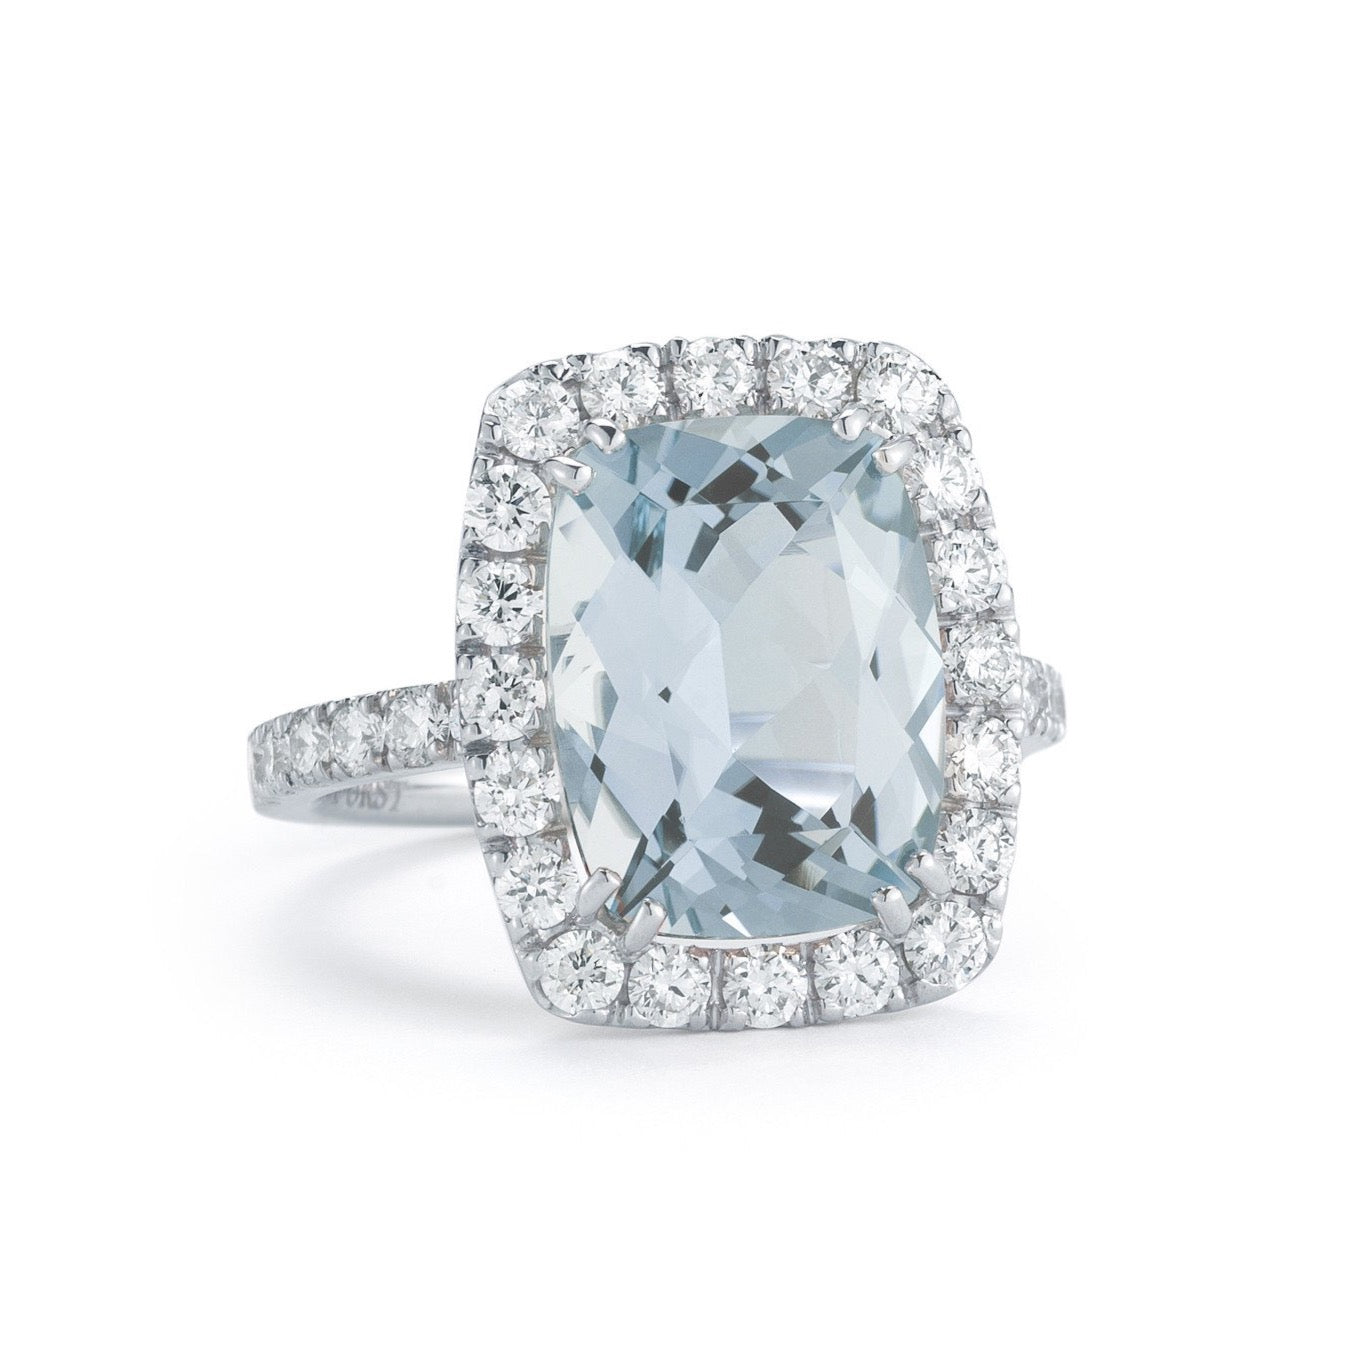 A-FURST-DYNAMITE-COCKTAIL-RING-AQUAMARINA-WHITE-DIAMONDS-WHITE-GOLD-A1301BH11